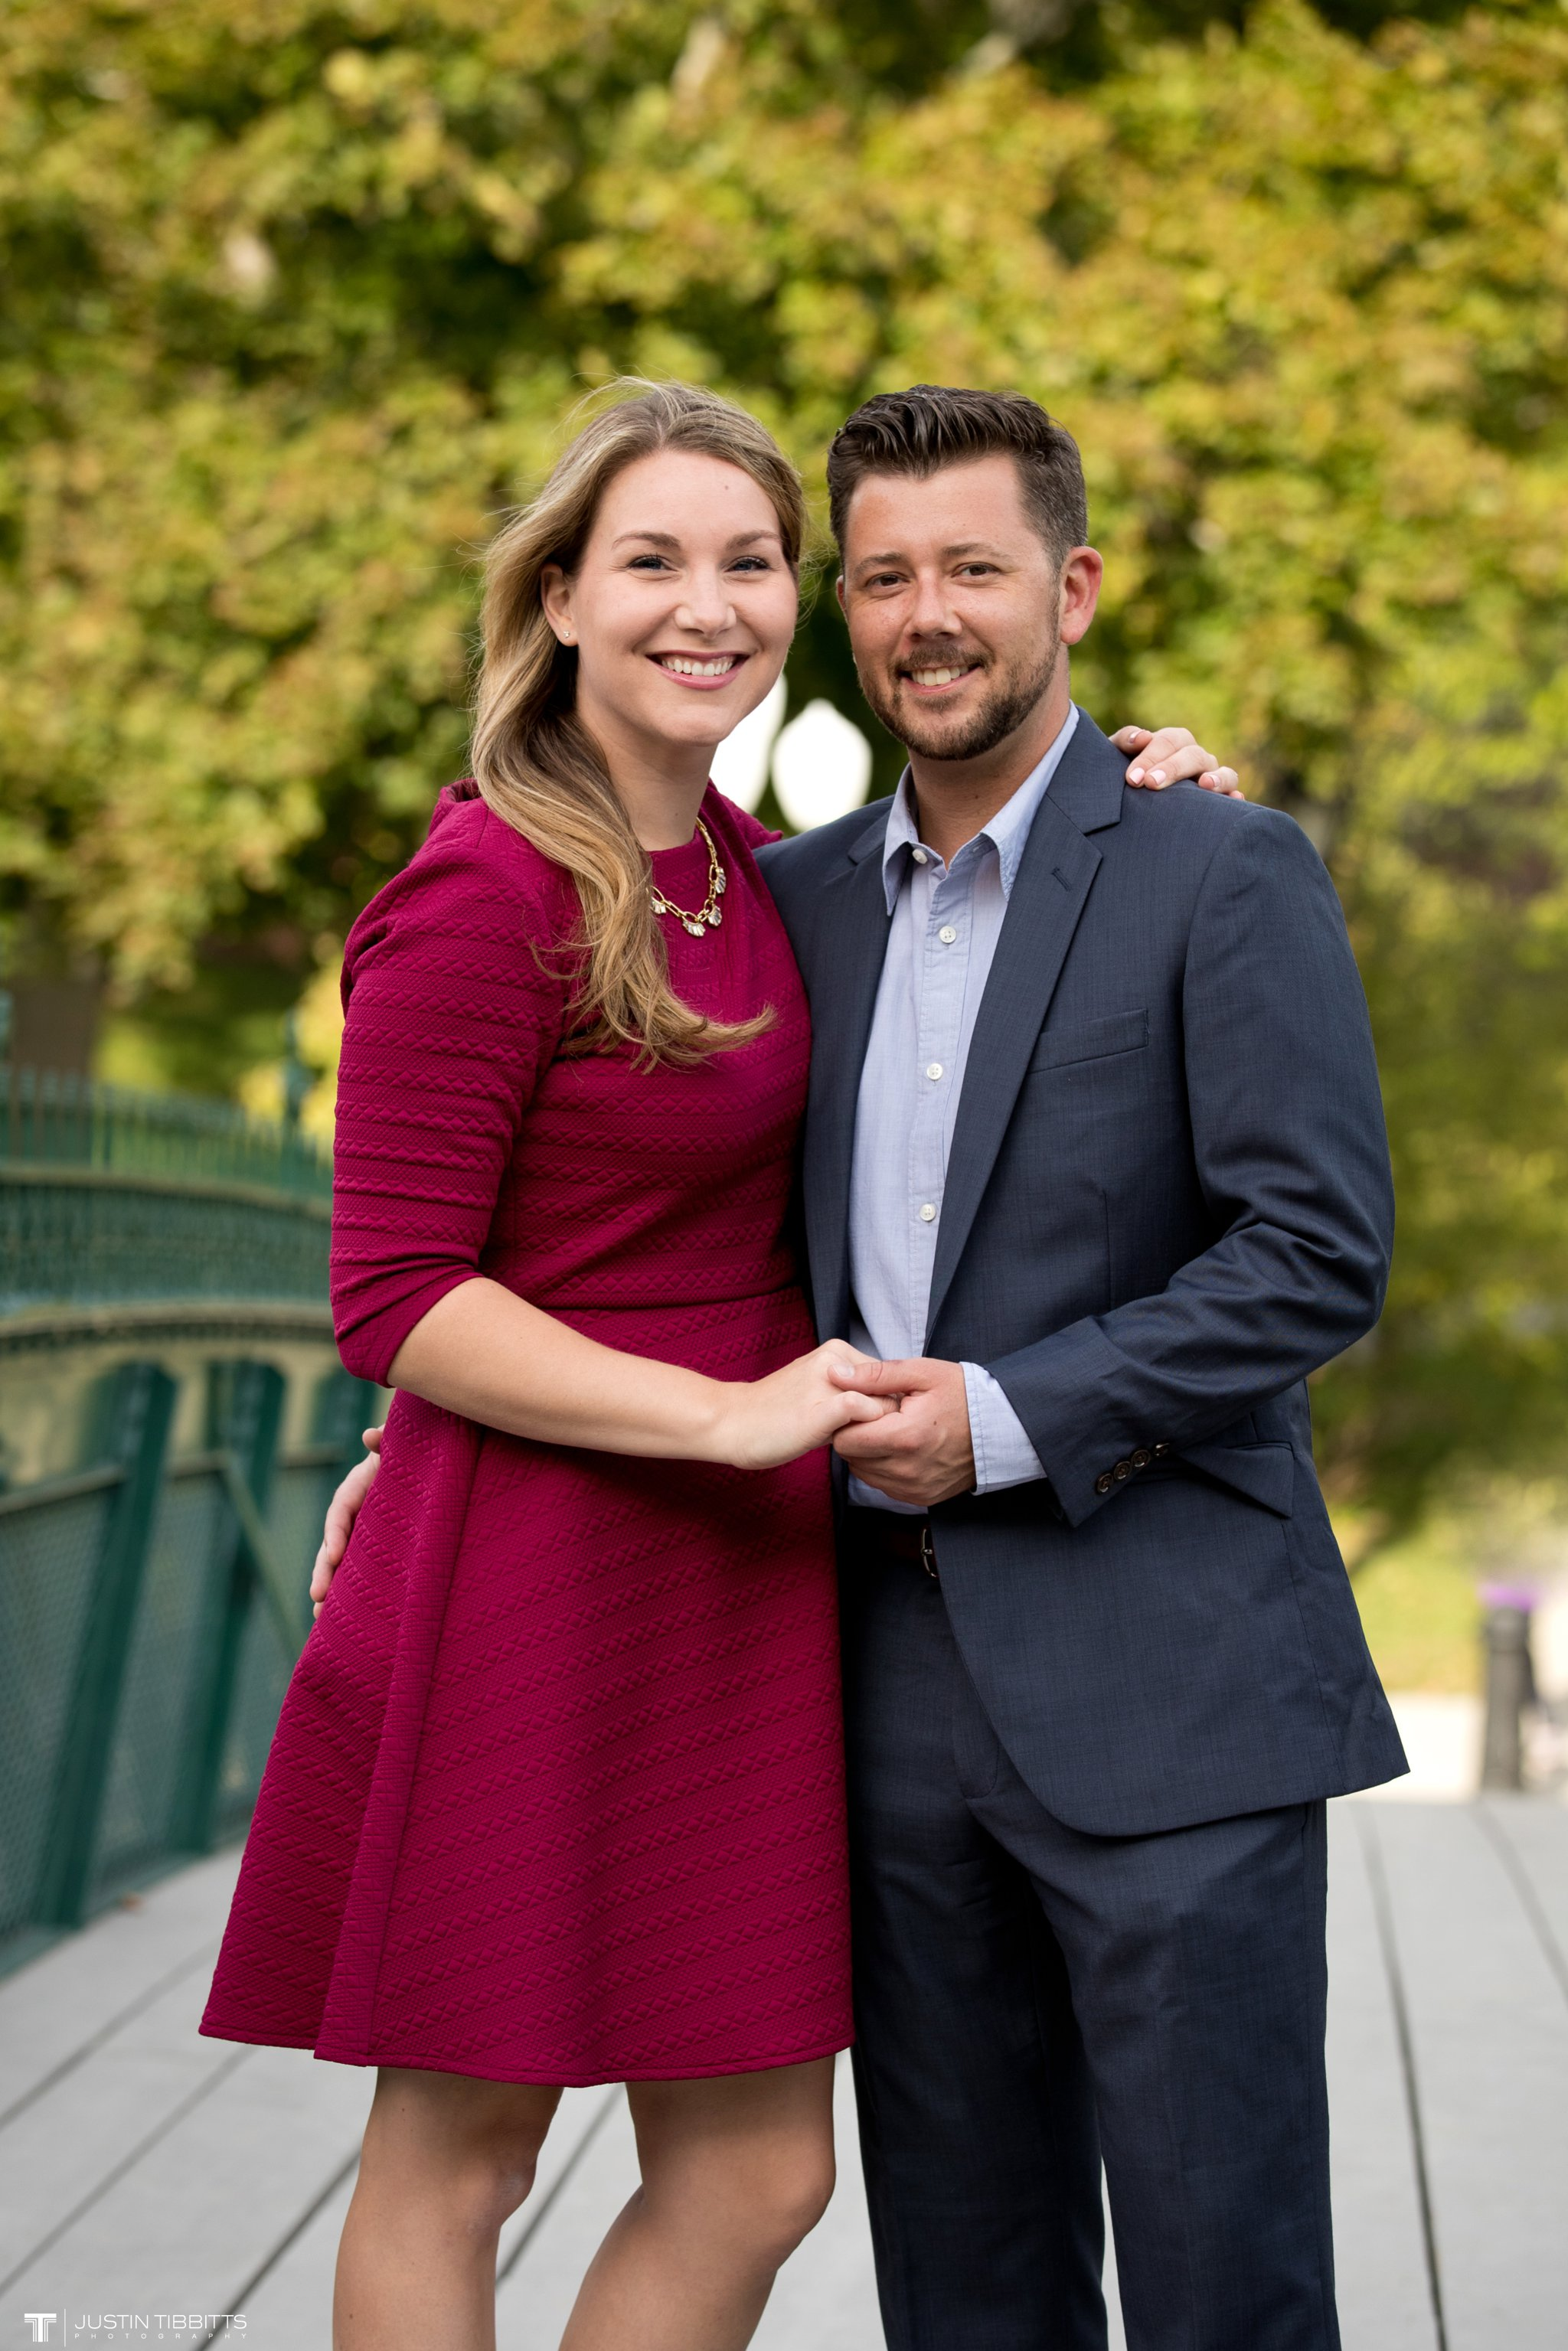 washington-park-albany-ny-engagement-photos-with-andrea-and-dan_0002